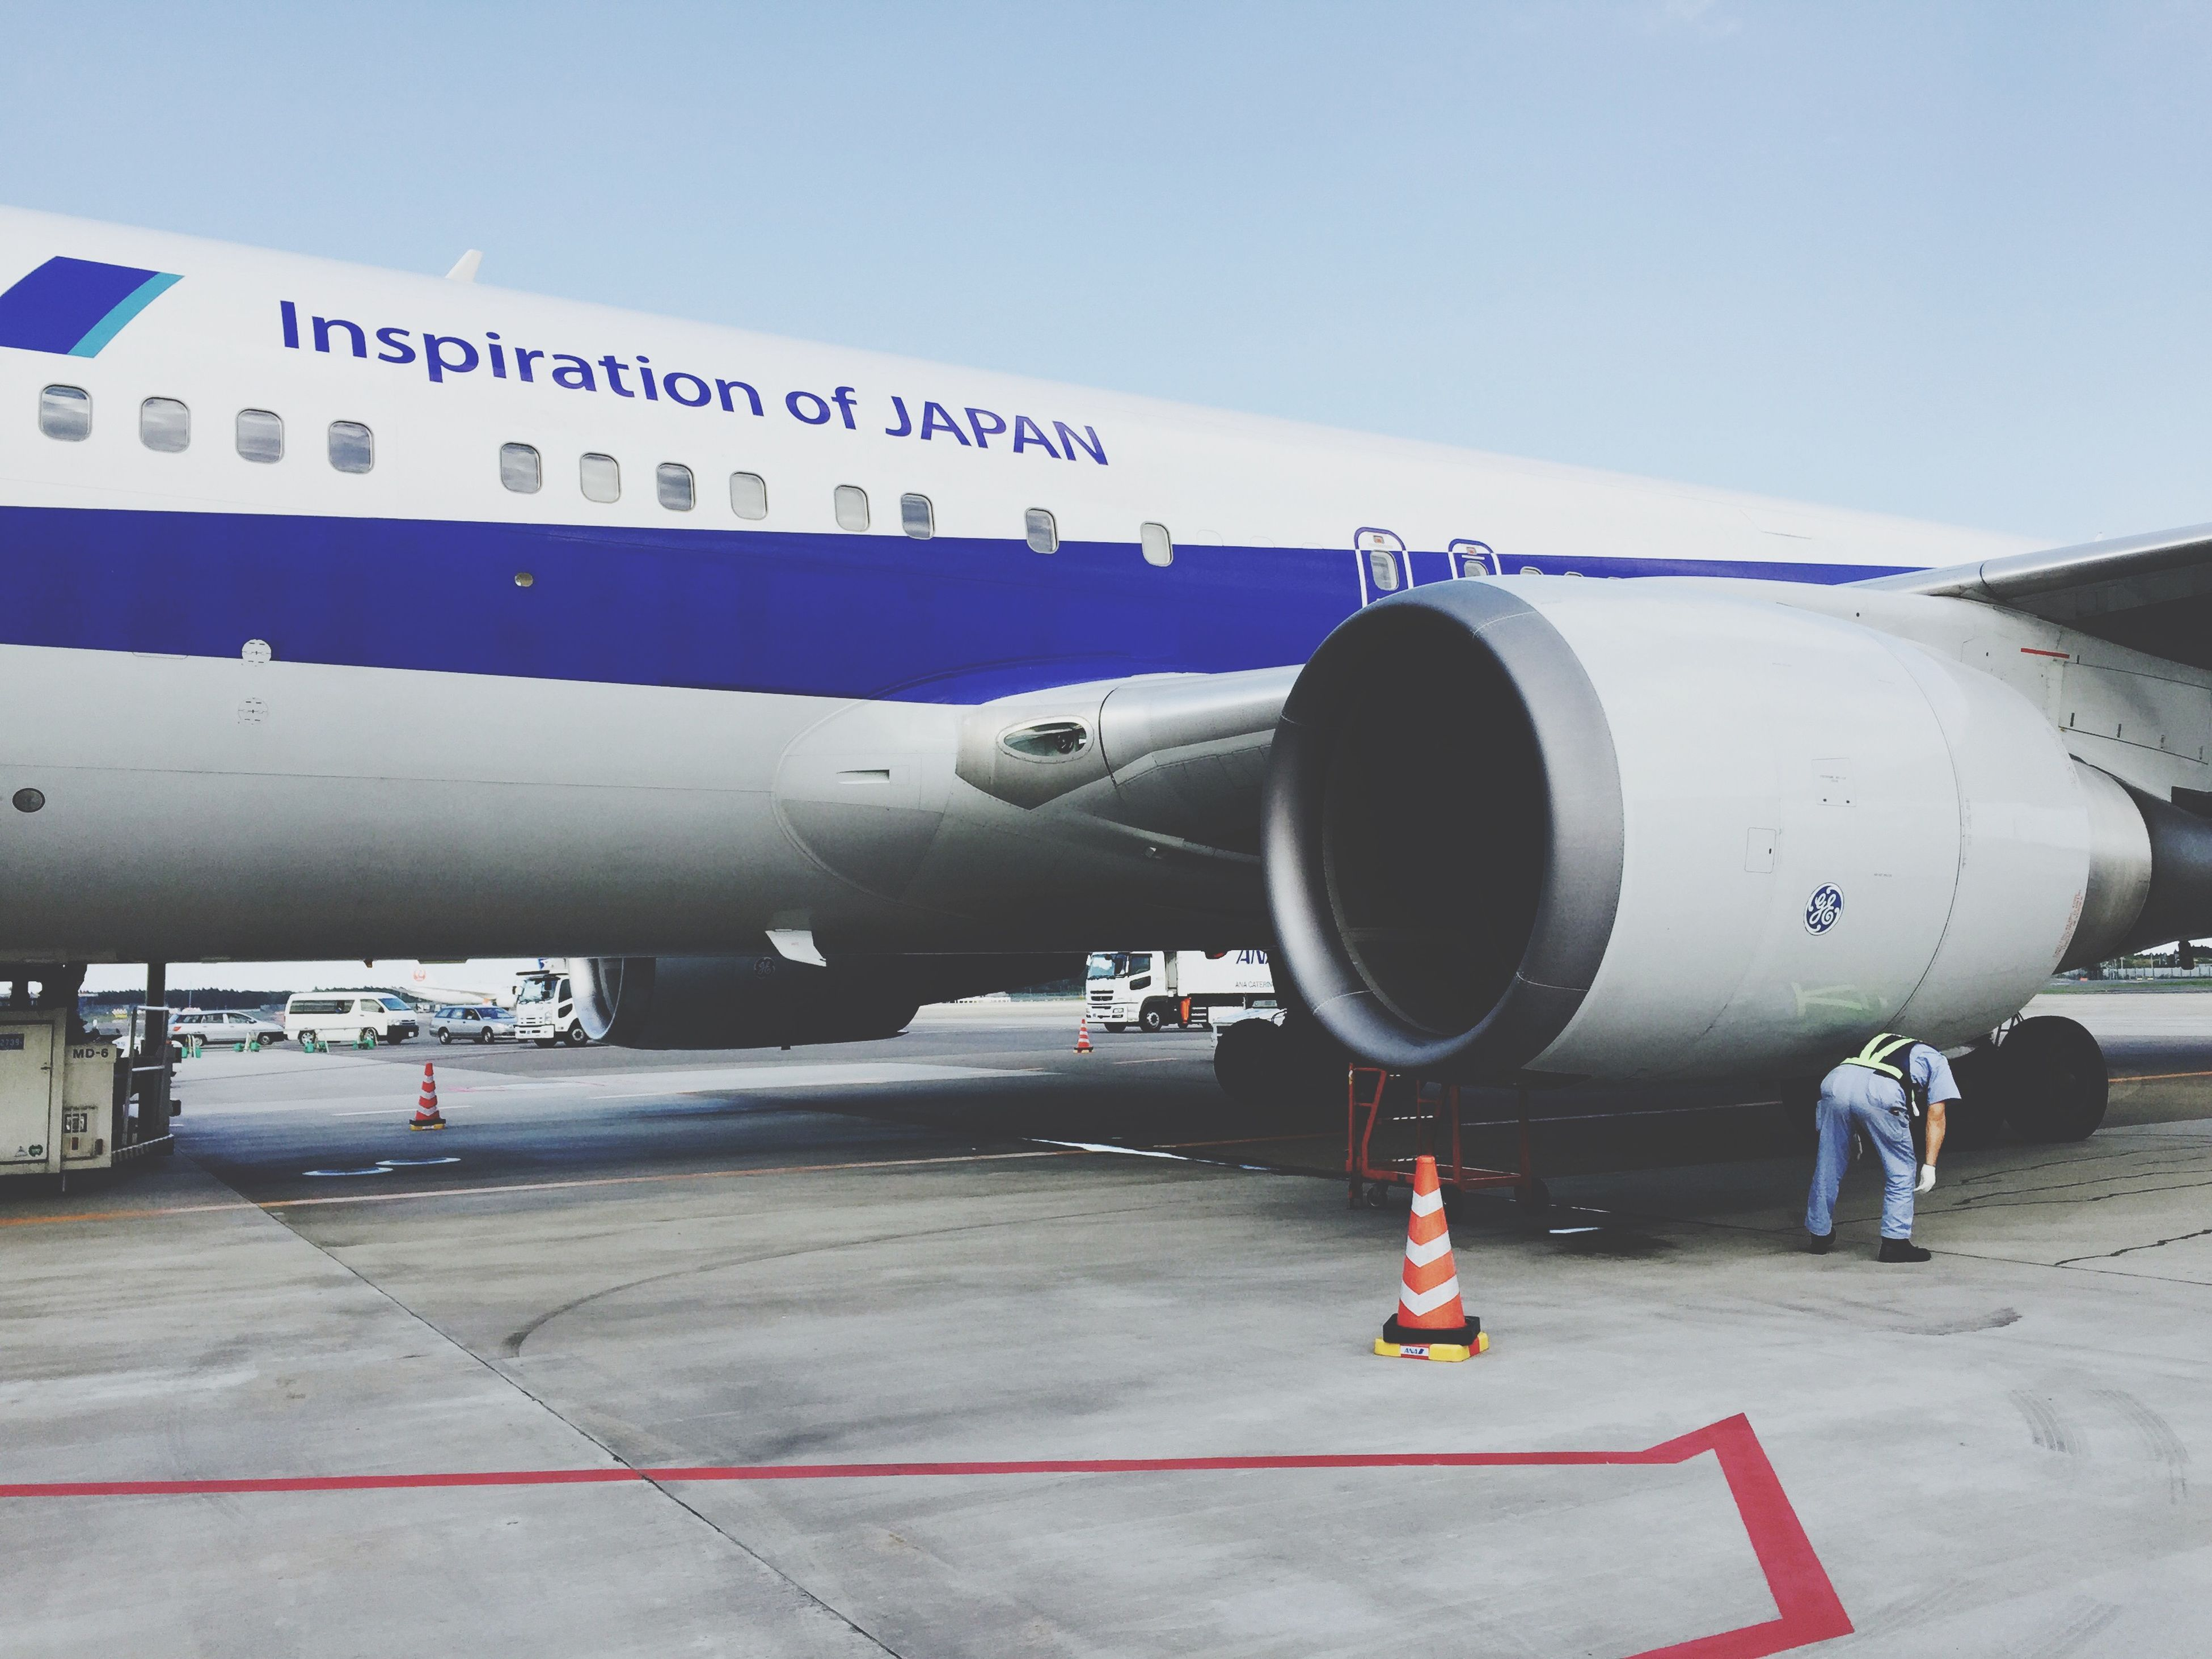 transportation, airplane, mode of transport, air vehicle, travel, sky, built structure, day, part of, blue, aircraft wing, outdoors, clear sky, cropped, airport runway, journey, architecture, no people, metal, land vehicle